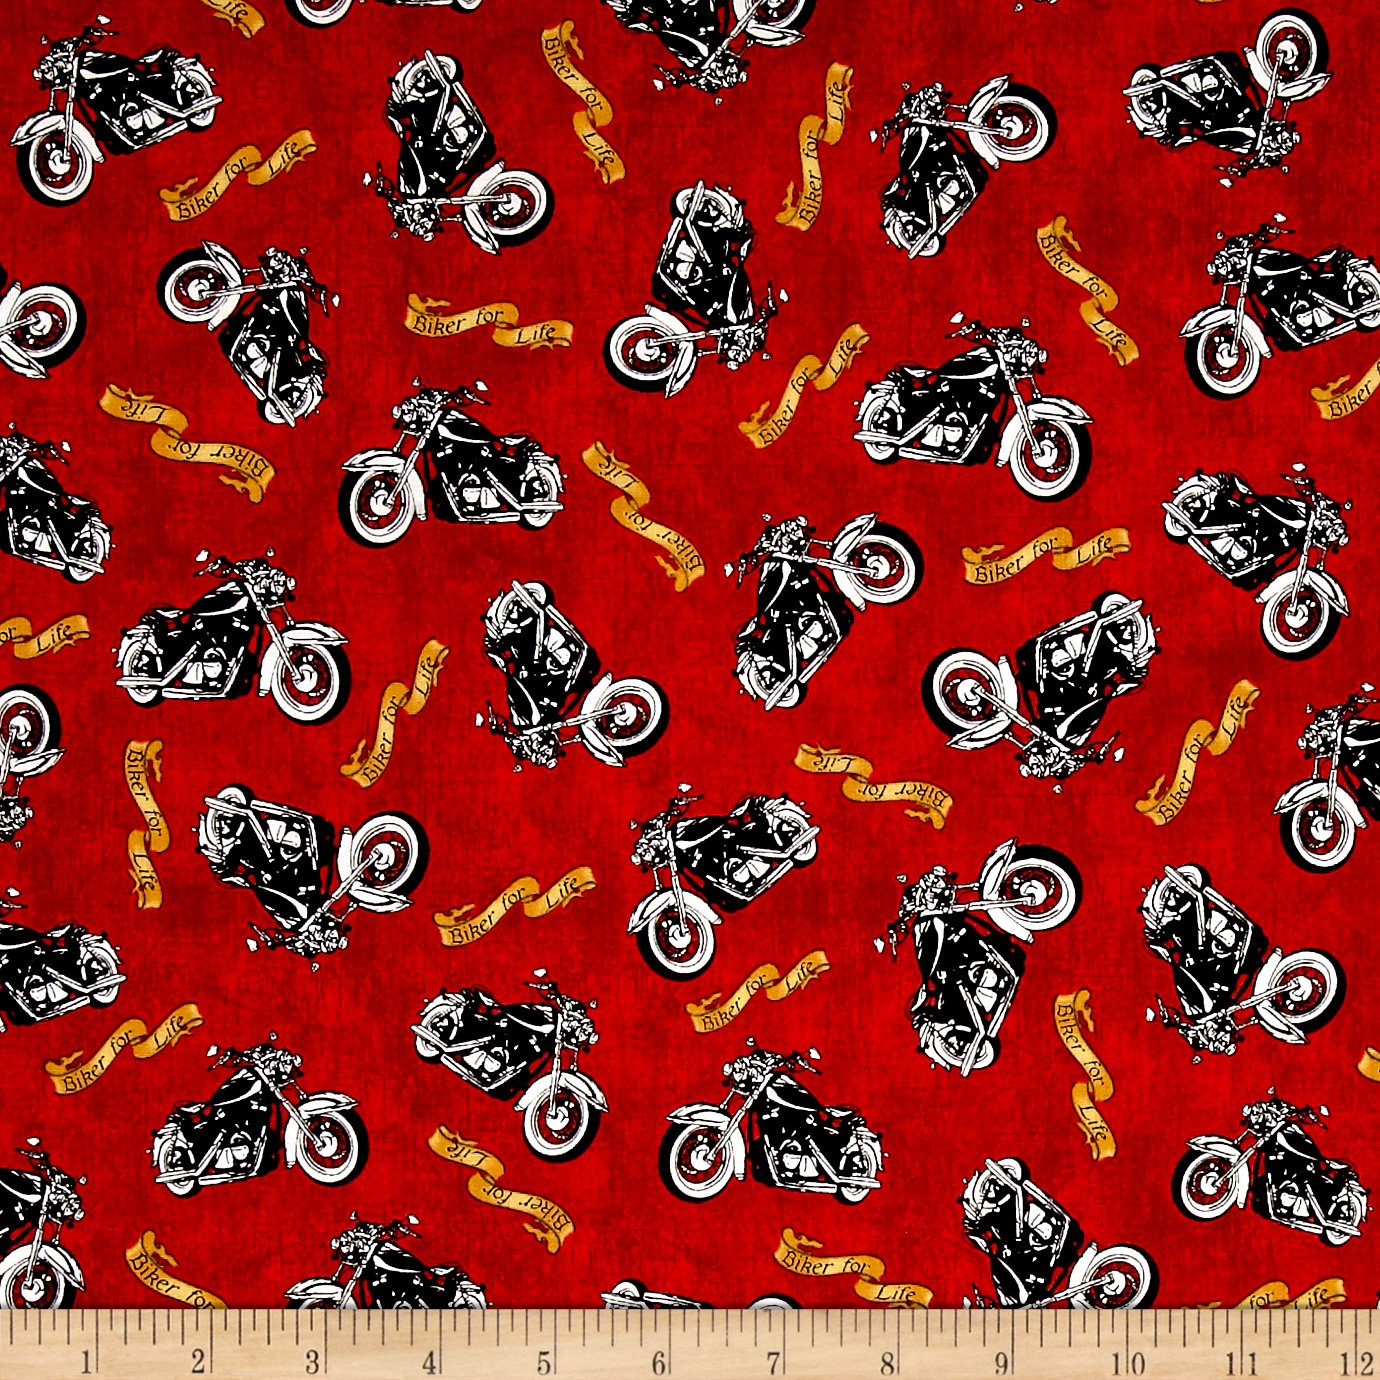 Biker For Life Motorcycle Toss Red Fabric By The Yard